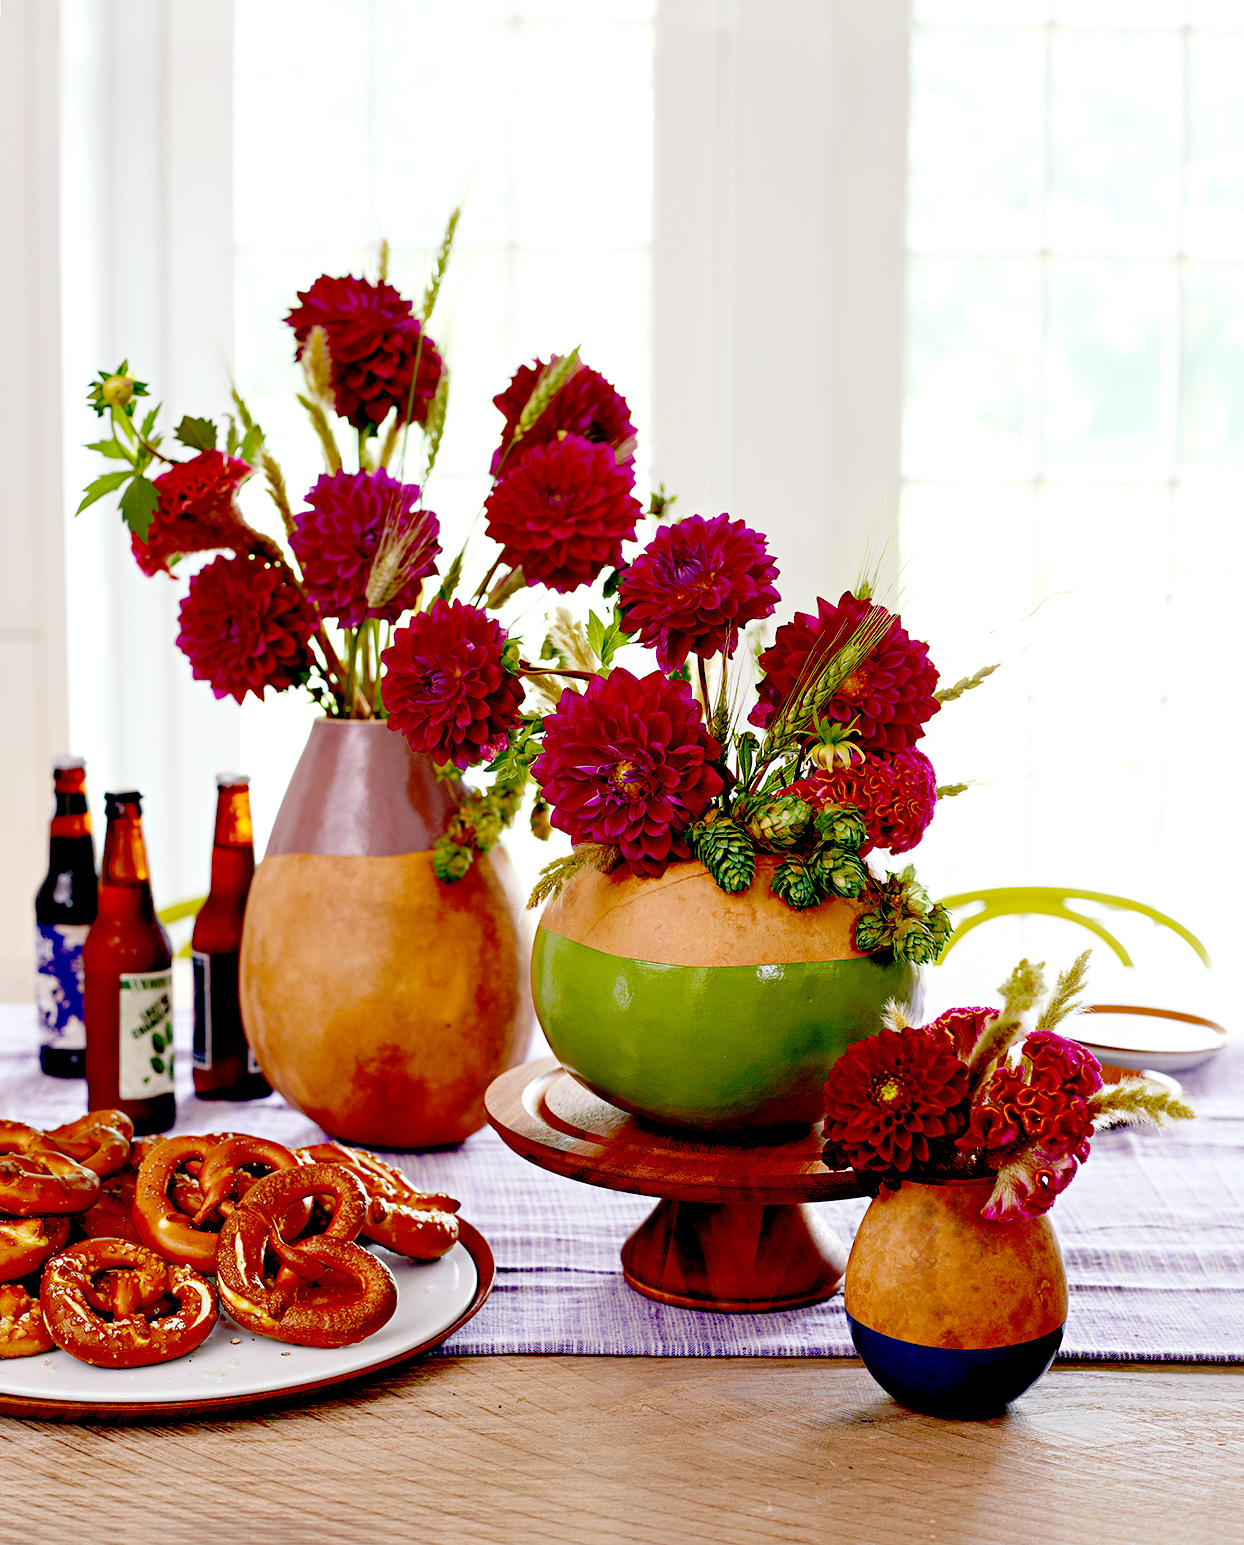 Three vases filled with burgundy flowers